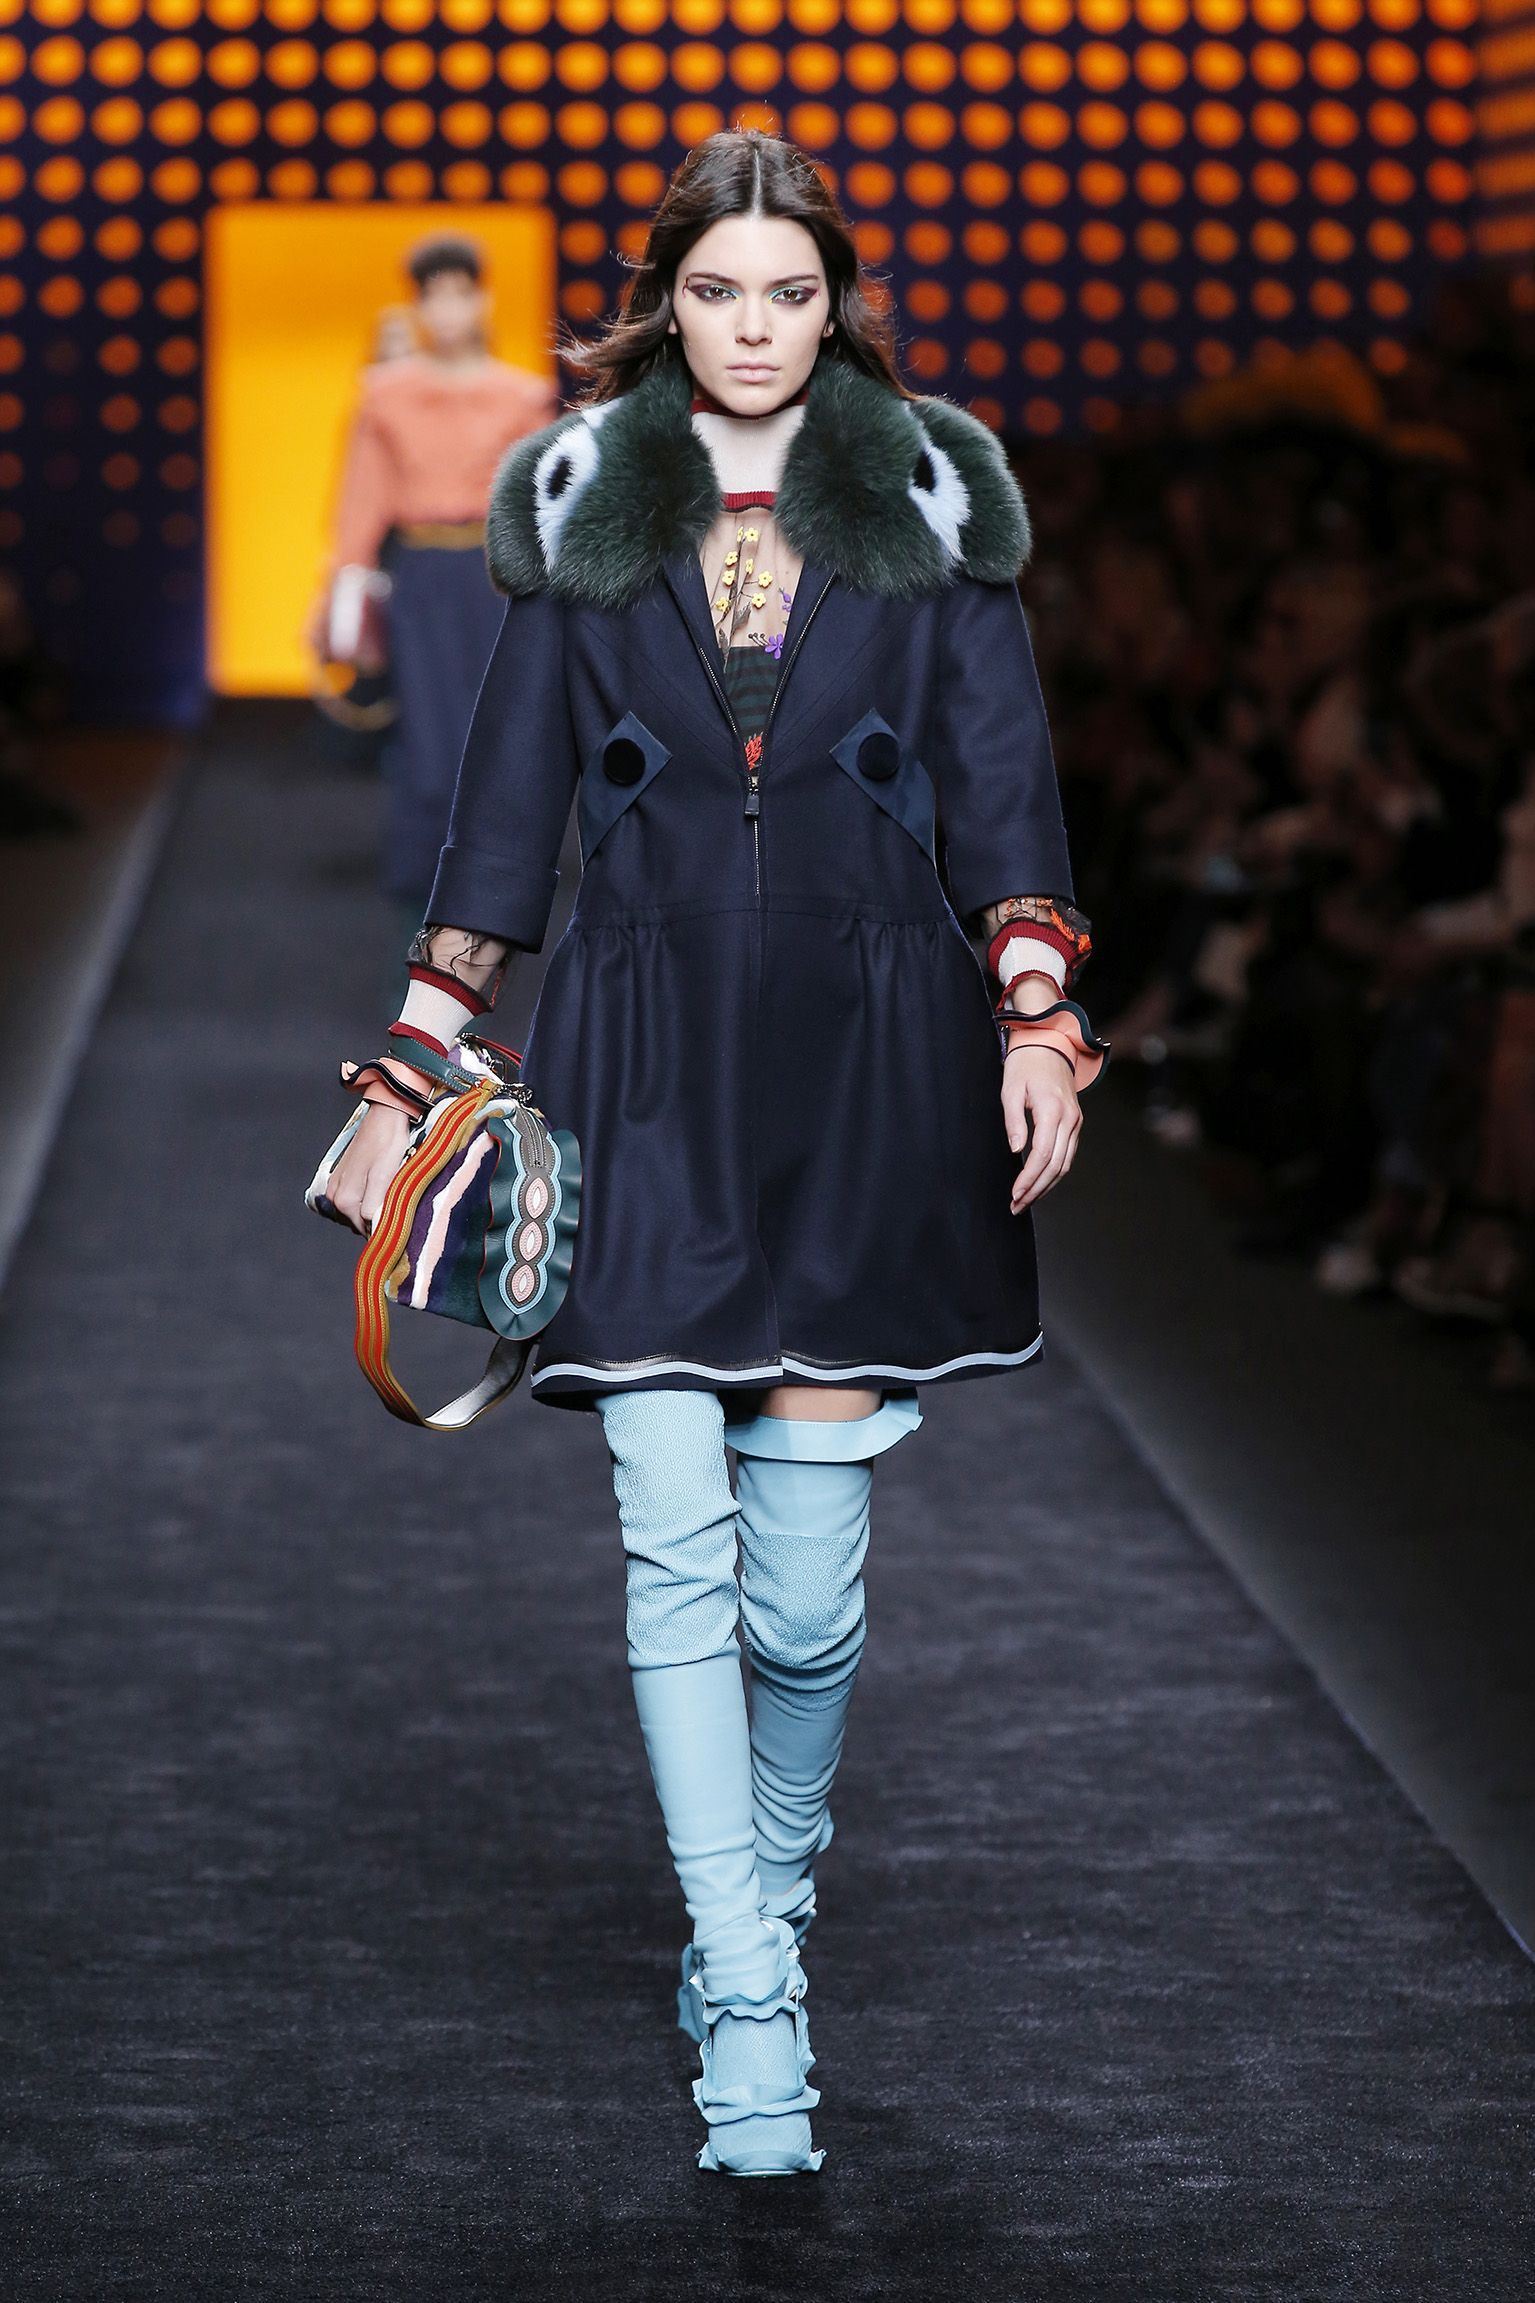 425e1db4f09d Kendall Jenner wears the opening look for the Fendi Fall Winter 2016-17  runway show.